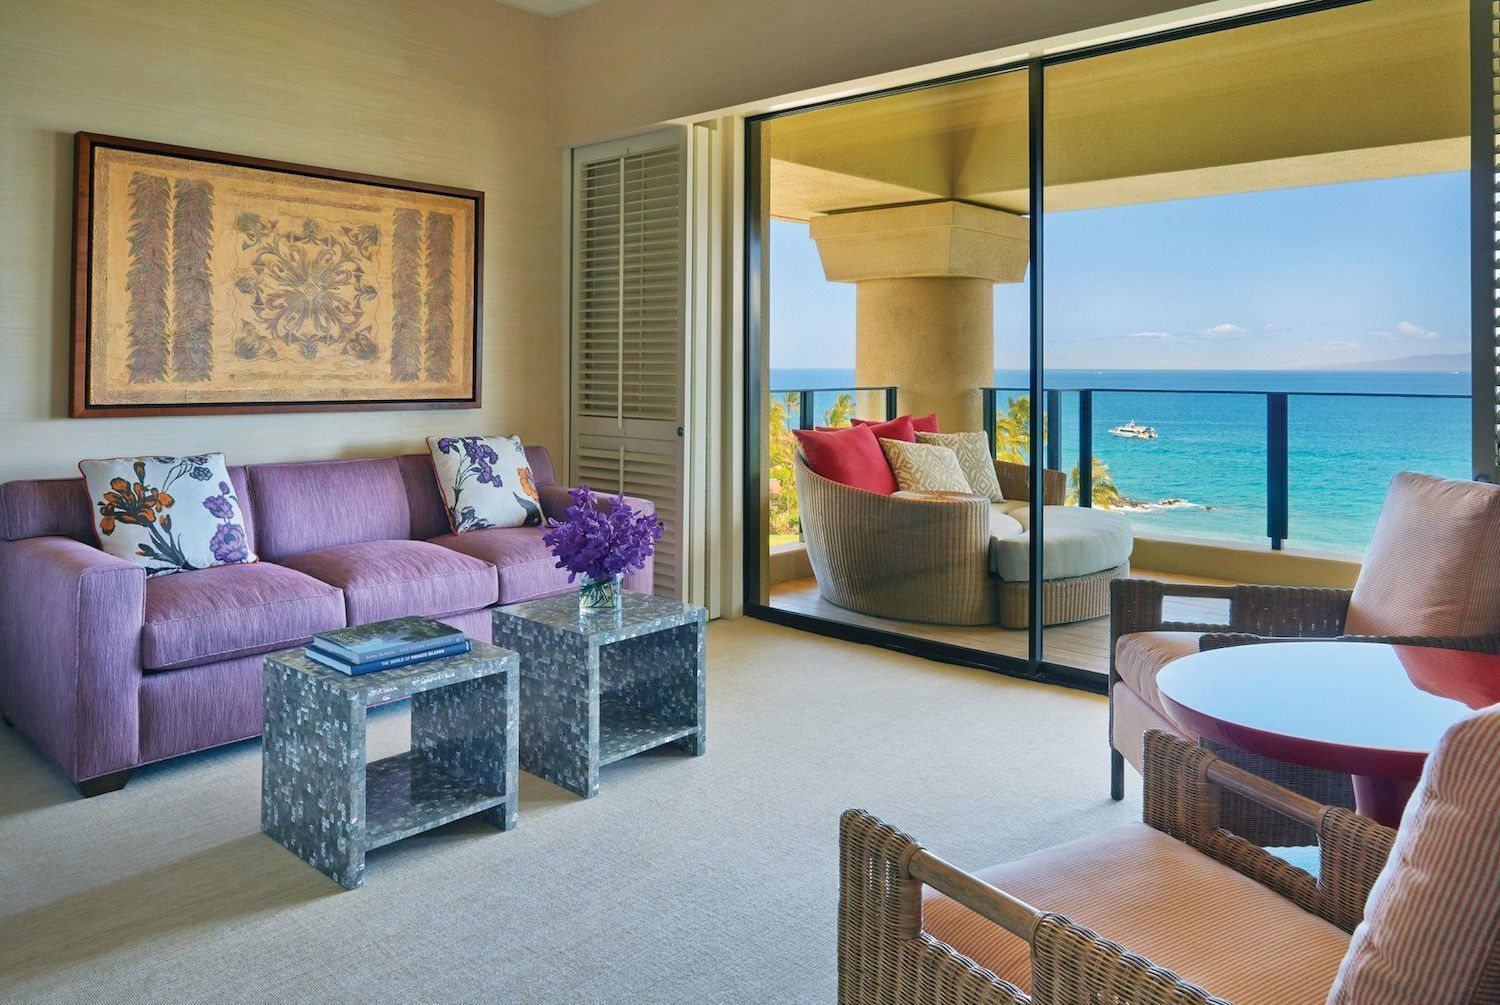 The Four Season's Resort Maui at Wailea - 'Maile' Presidential Suite - Master Bedroom